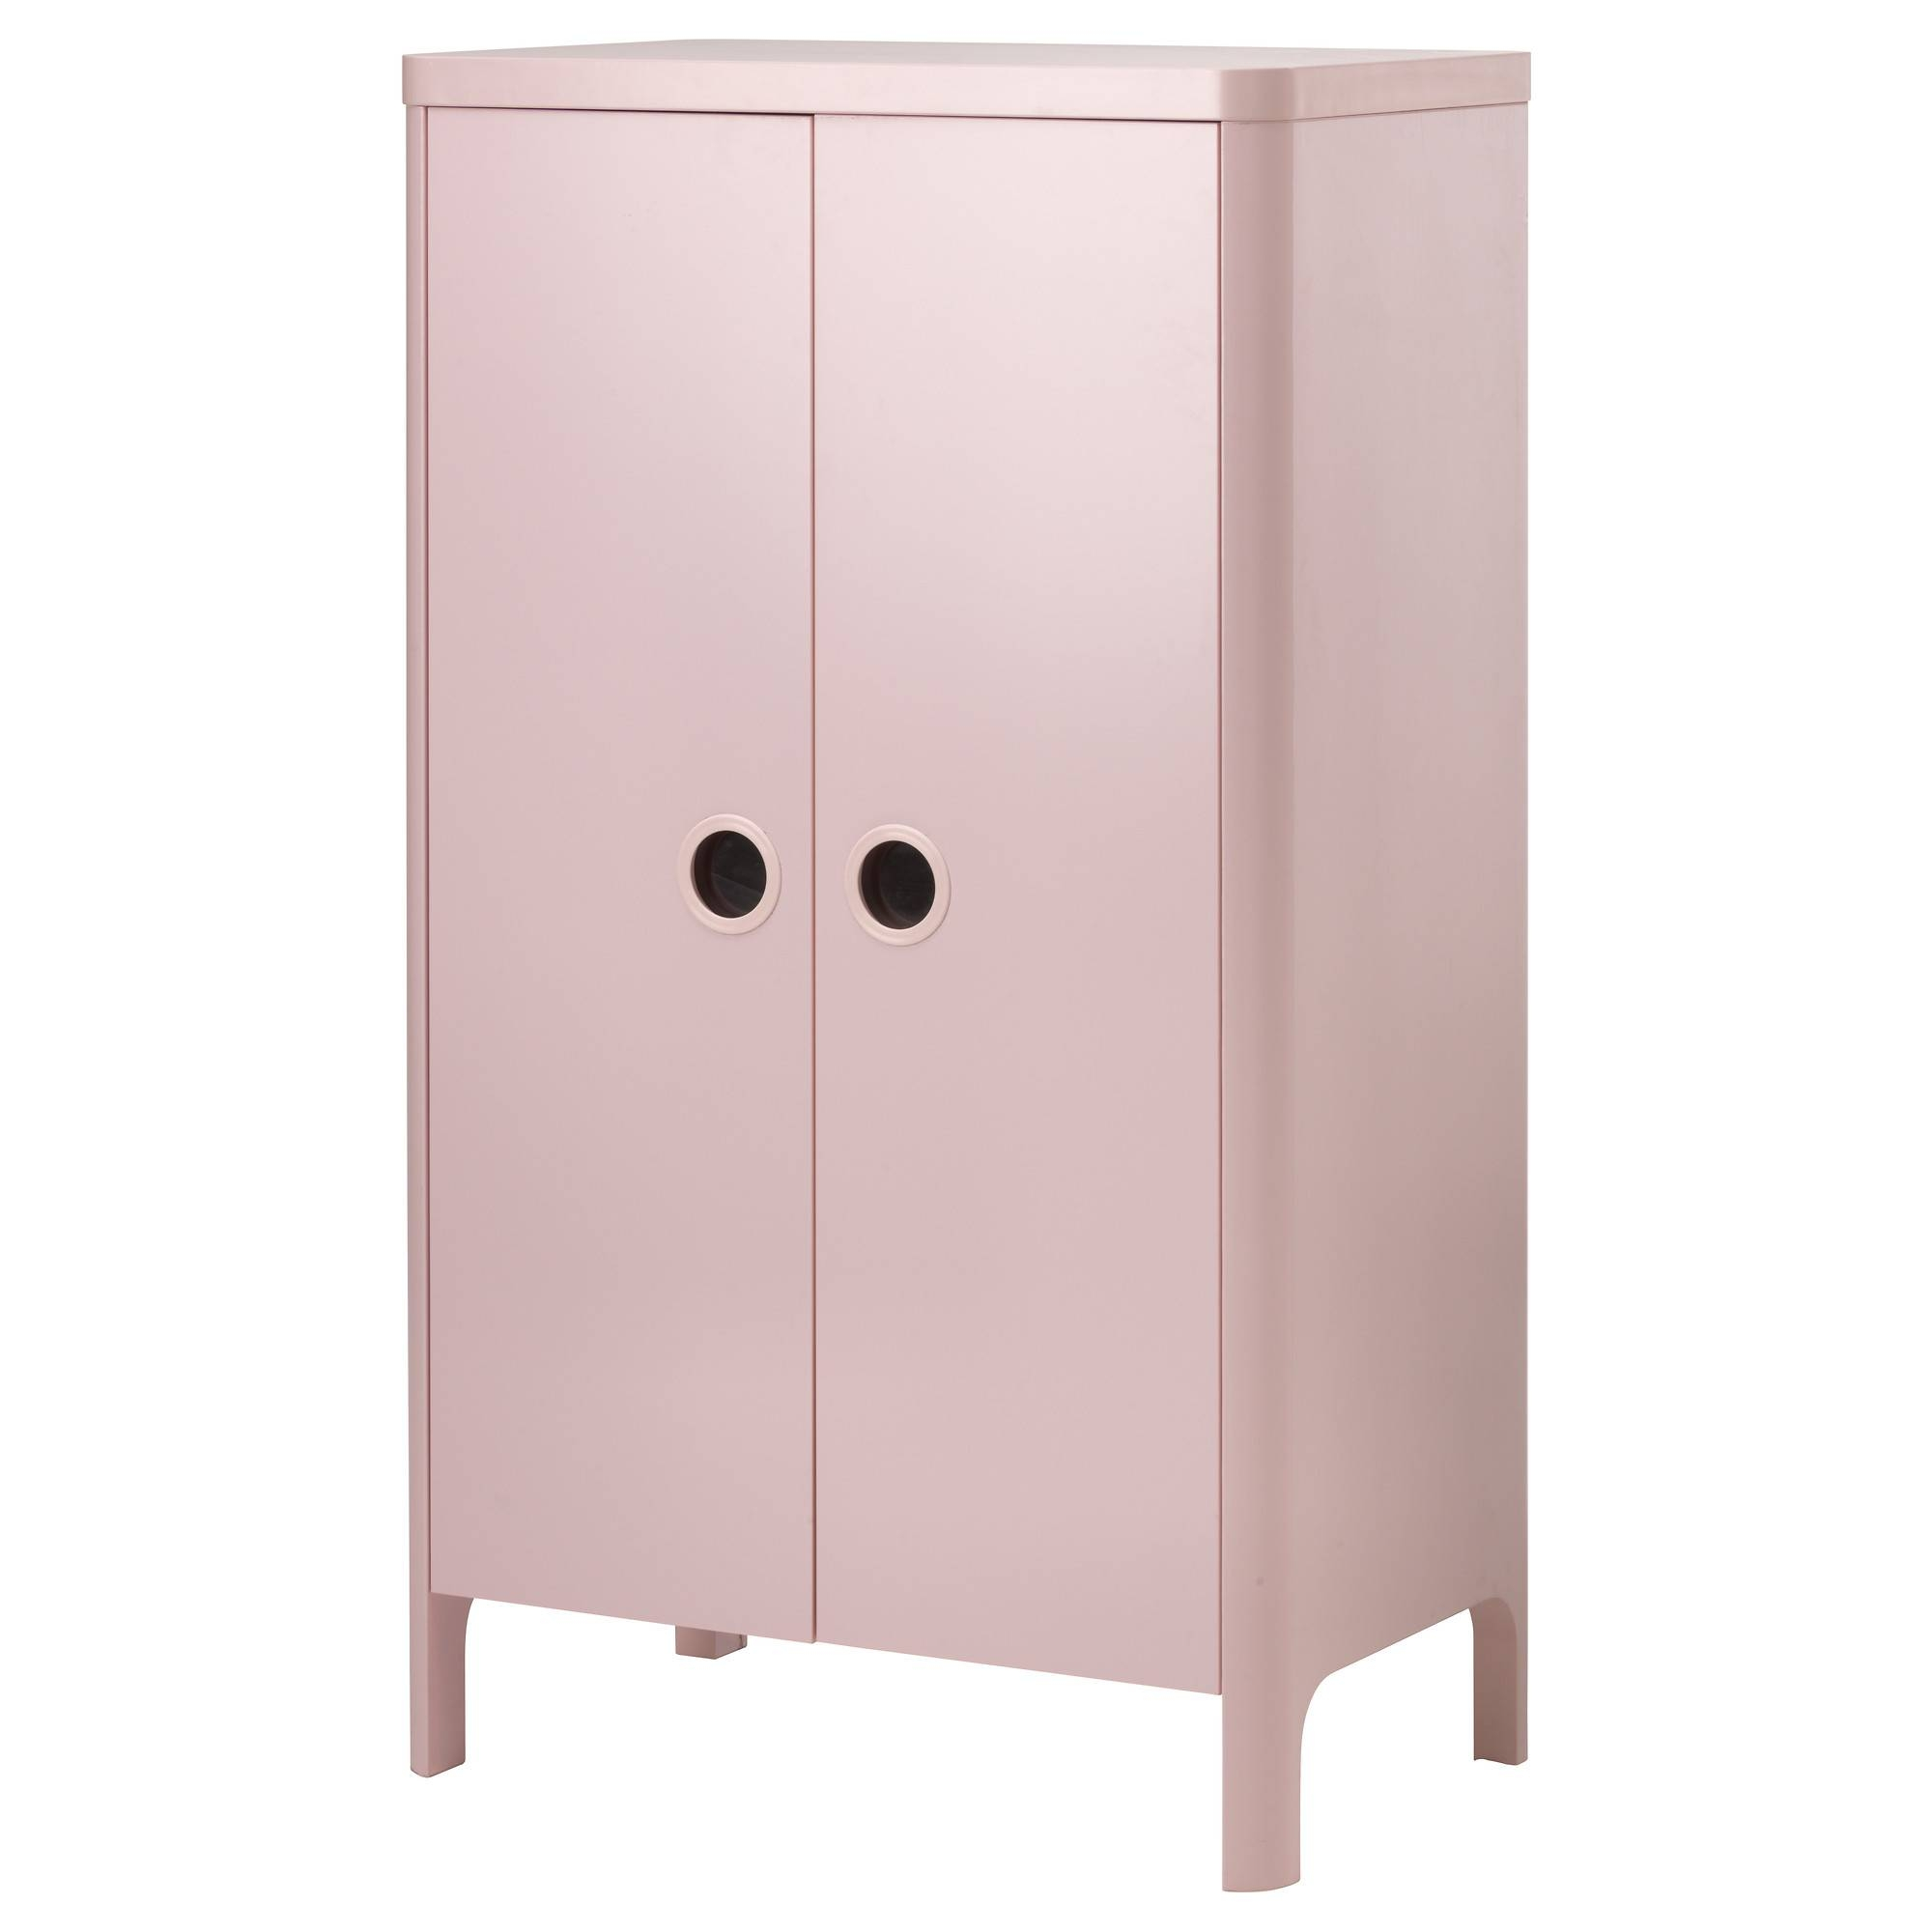 Children's Wardrobes - Nursery Wardrobes - Ikea pertaining to Childrens Tallboy Wardrobes (Image 3 of 15)